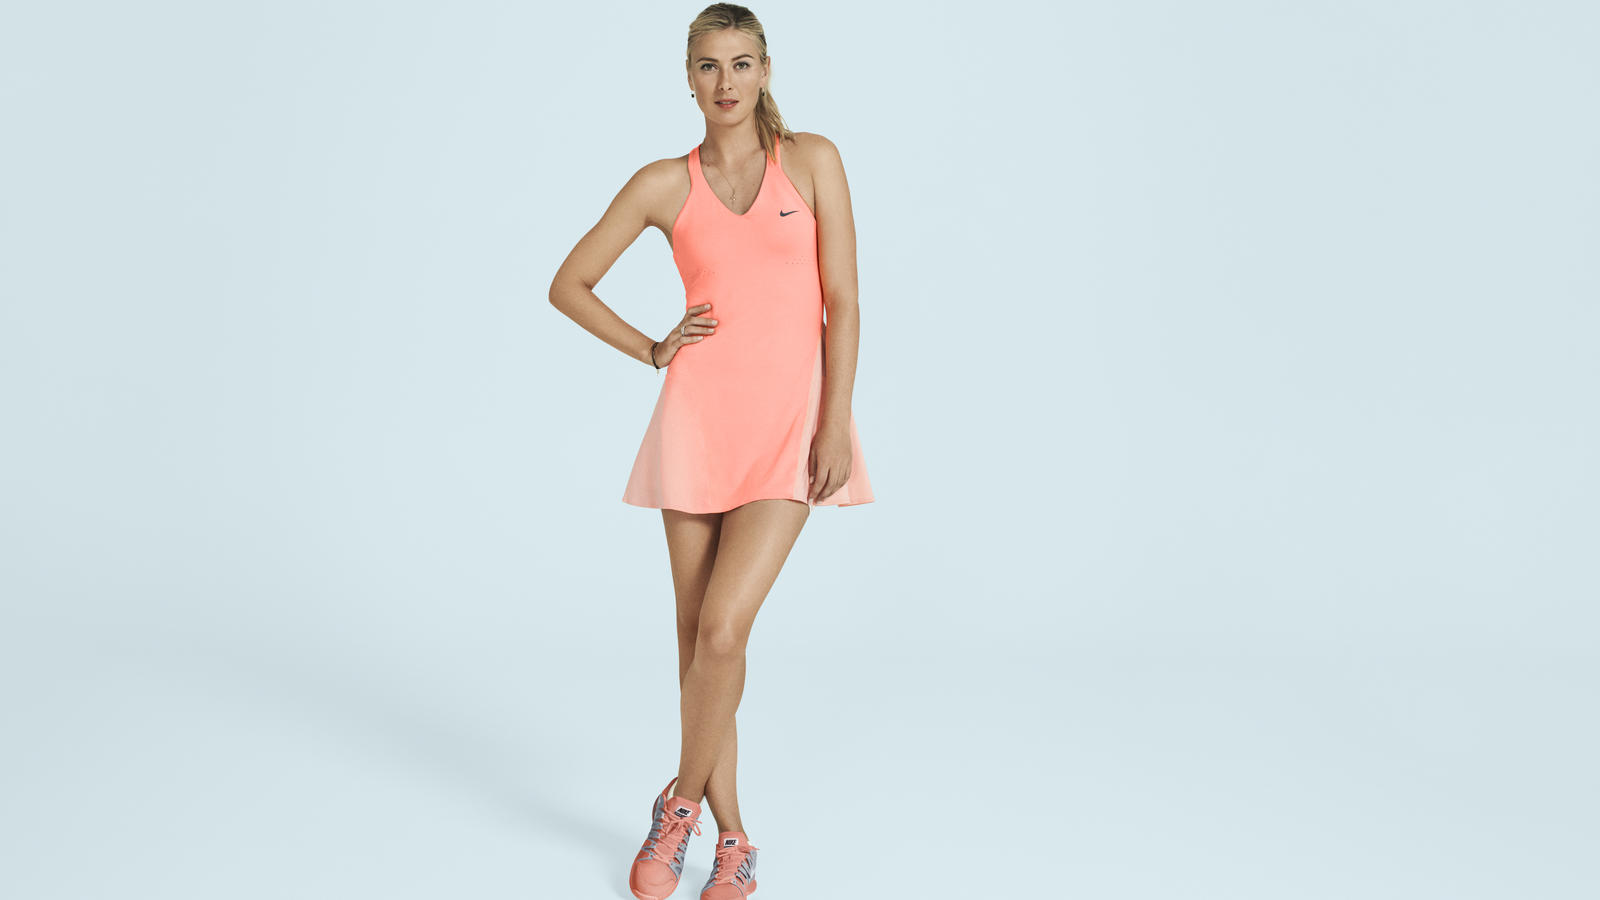 Nike Tennis Maria Sharapova - NYC 2013